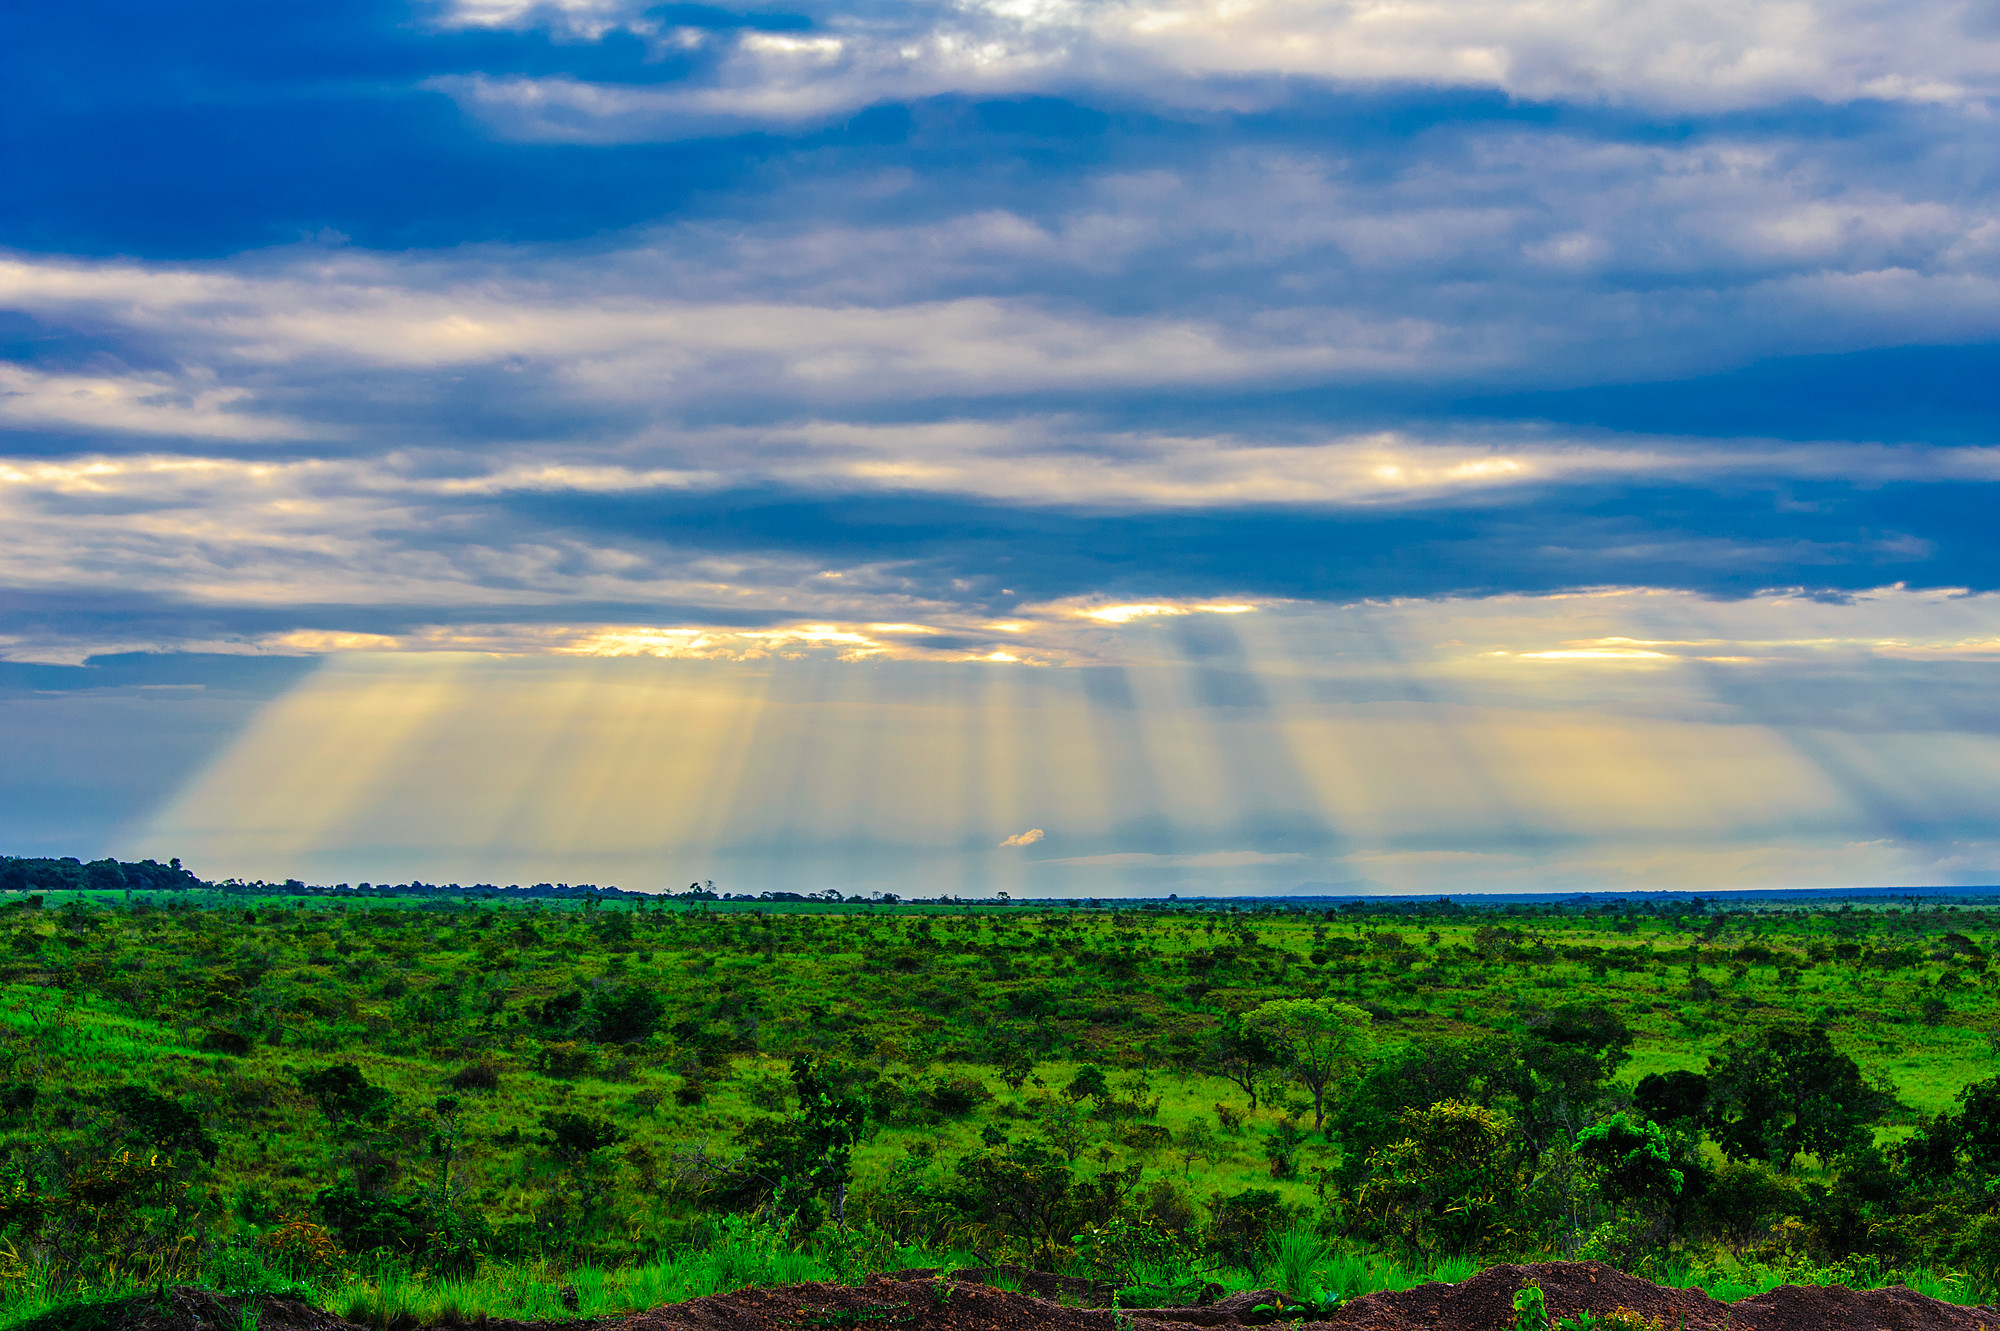 The Beauty of the Rupununi Savannah - Expedition Portal